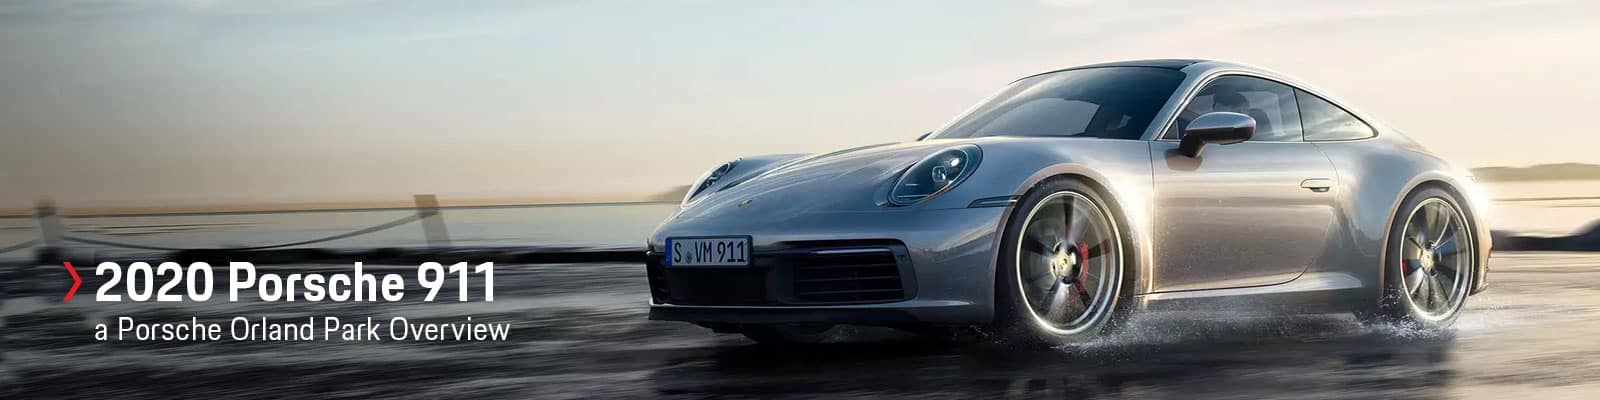 2020 Porsche 911 Model Overview at Porsche Orland Park